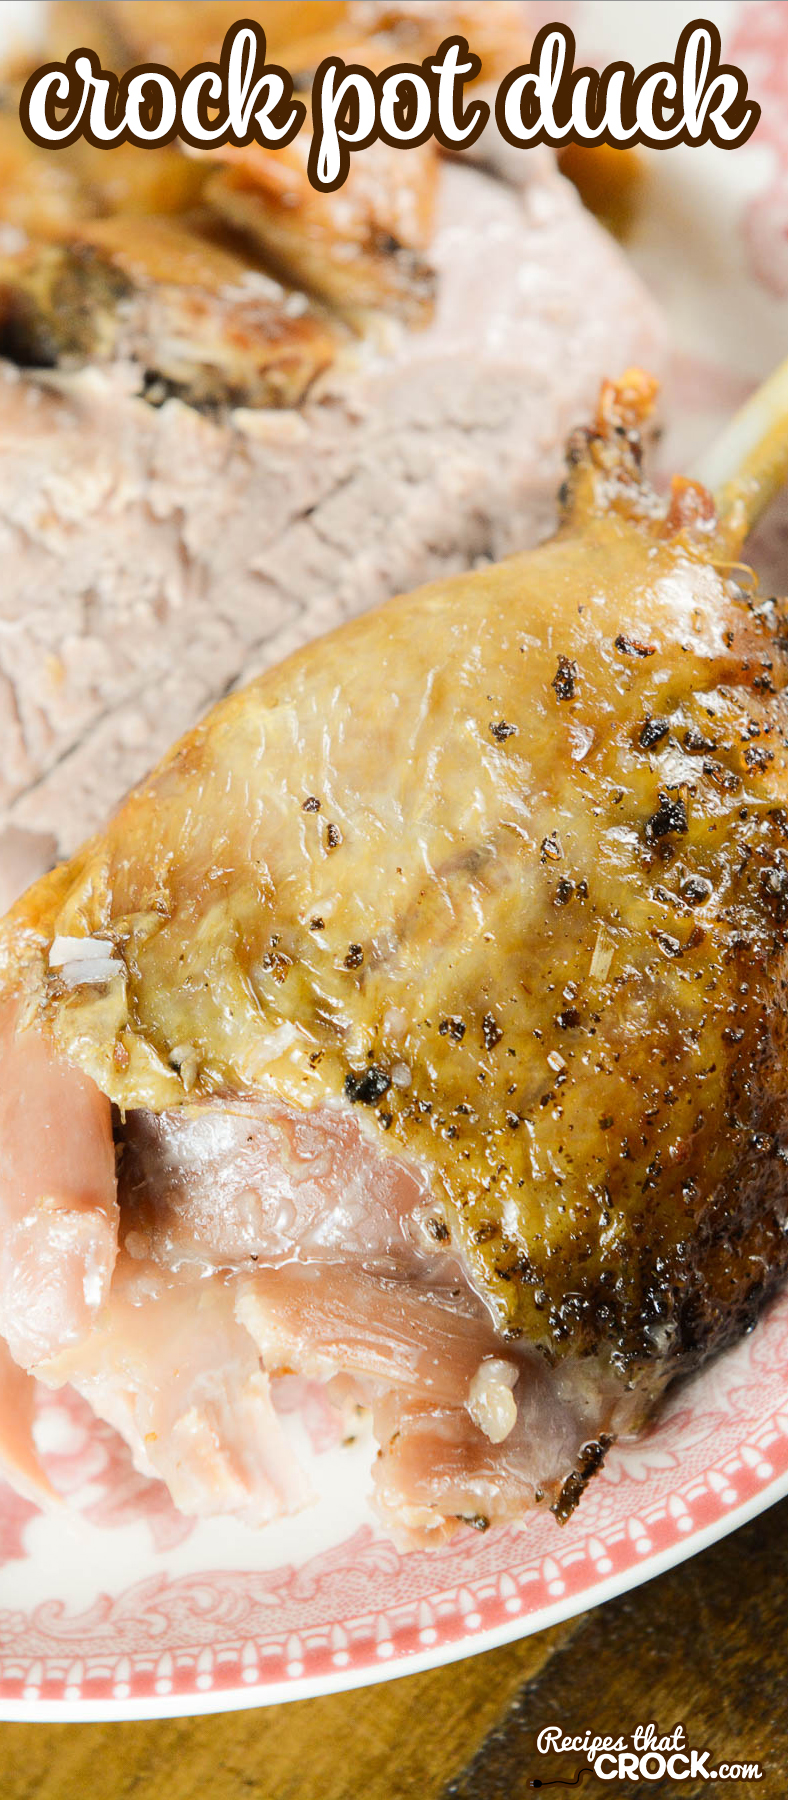 Cooking a whole duck is super simple in your slow cooker. Our Crock Pot Duck Recipe is amazingly easy and oh-so delicious!